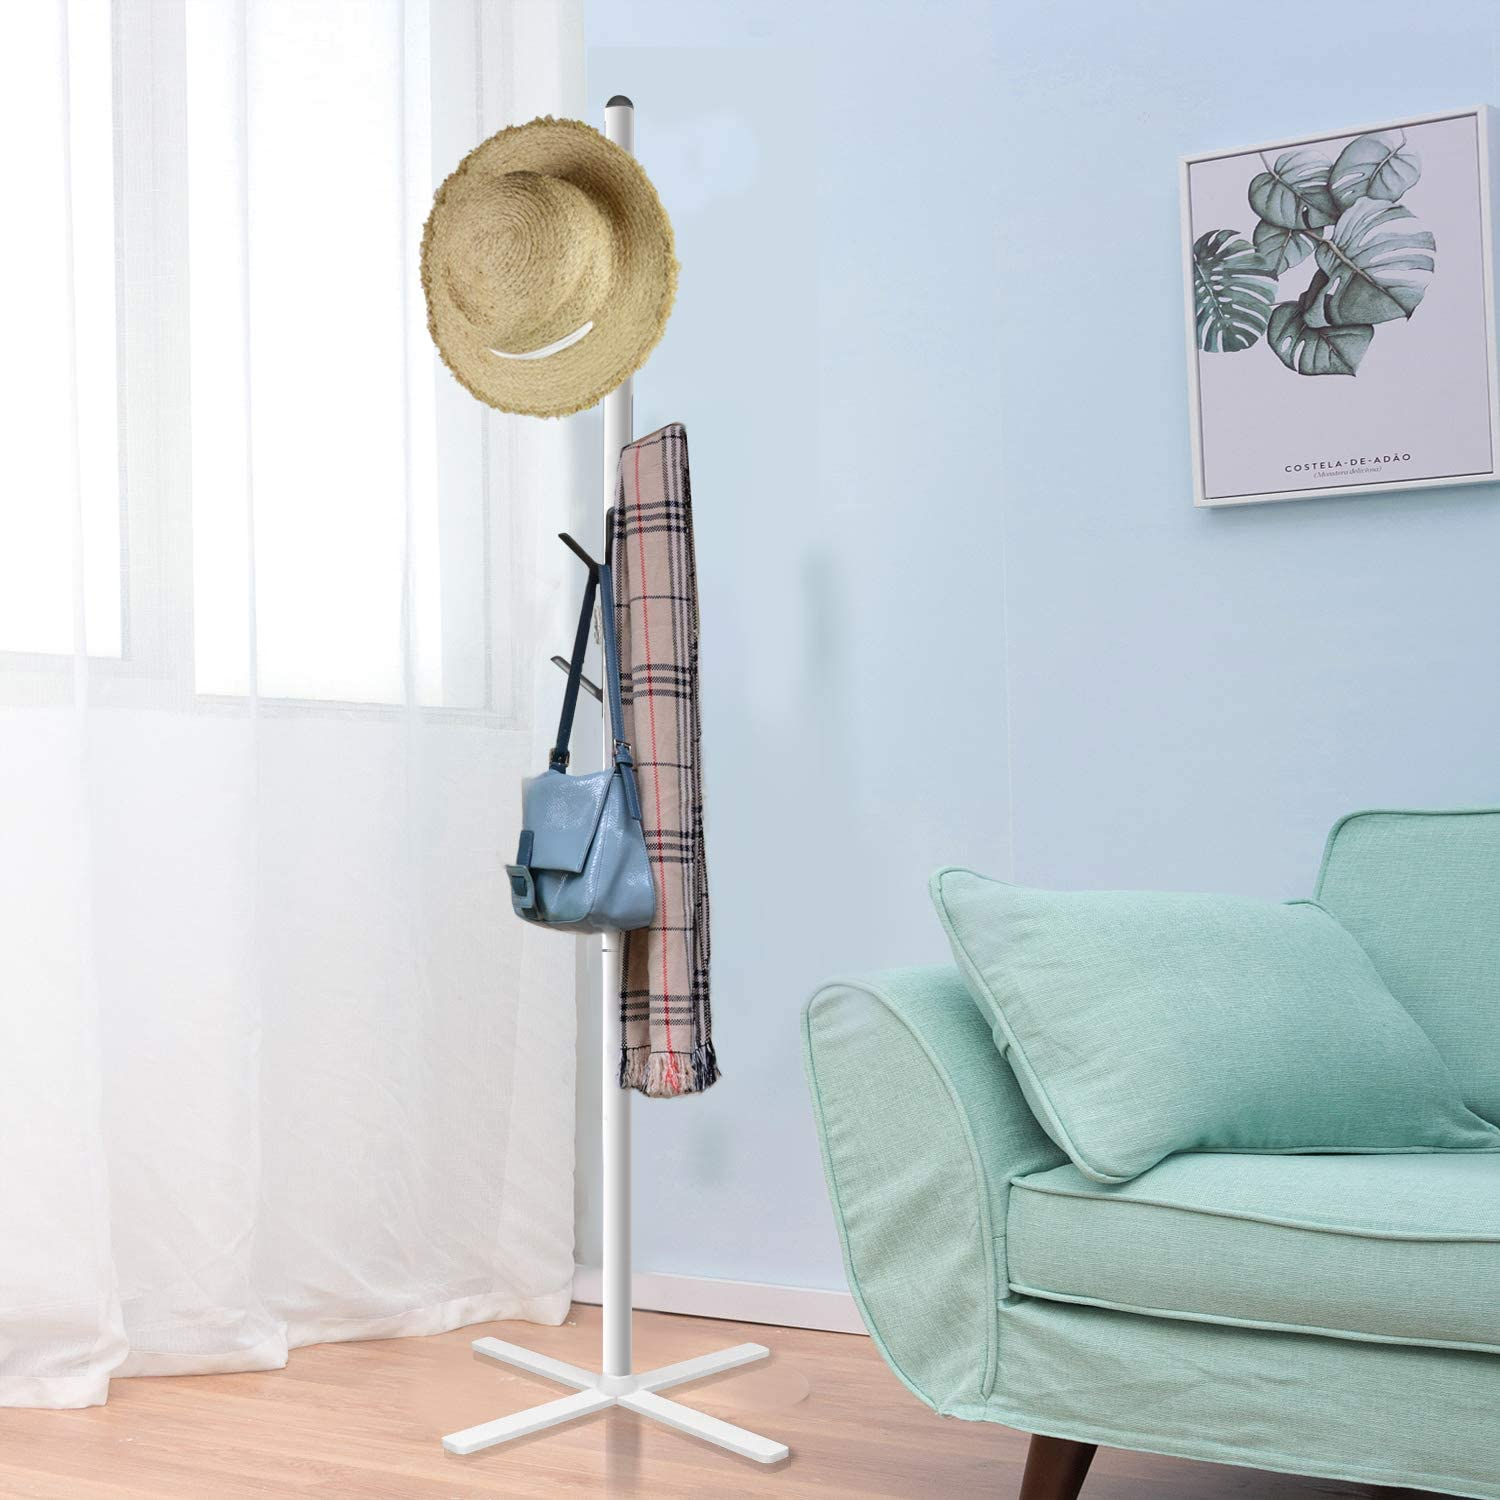 Umbrella Hats Nisorpa Coat Stand Rack Folding Clothes Hat Rack 6 Hooks 173 cm Hall Tree Hallway Standing Hat Hanger Storage Rack with Disassembled Base for Clothes White Handbags